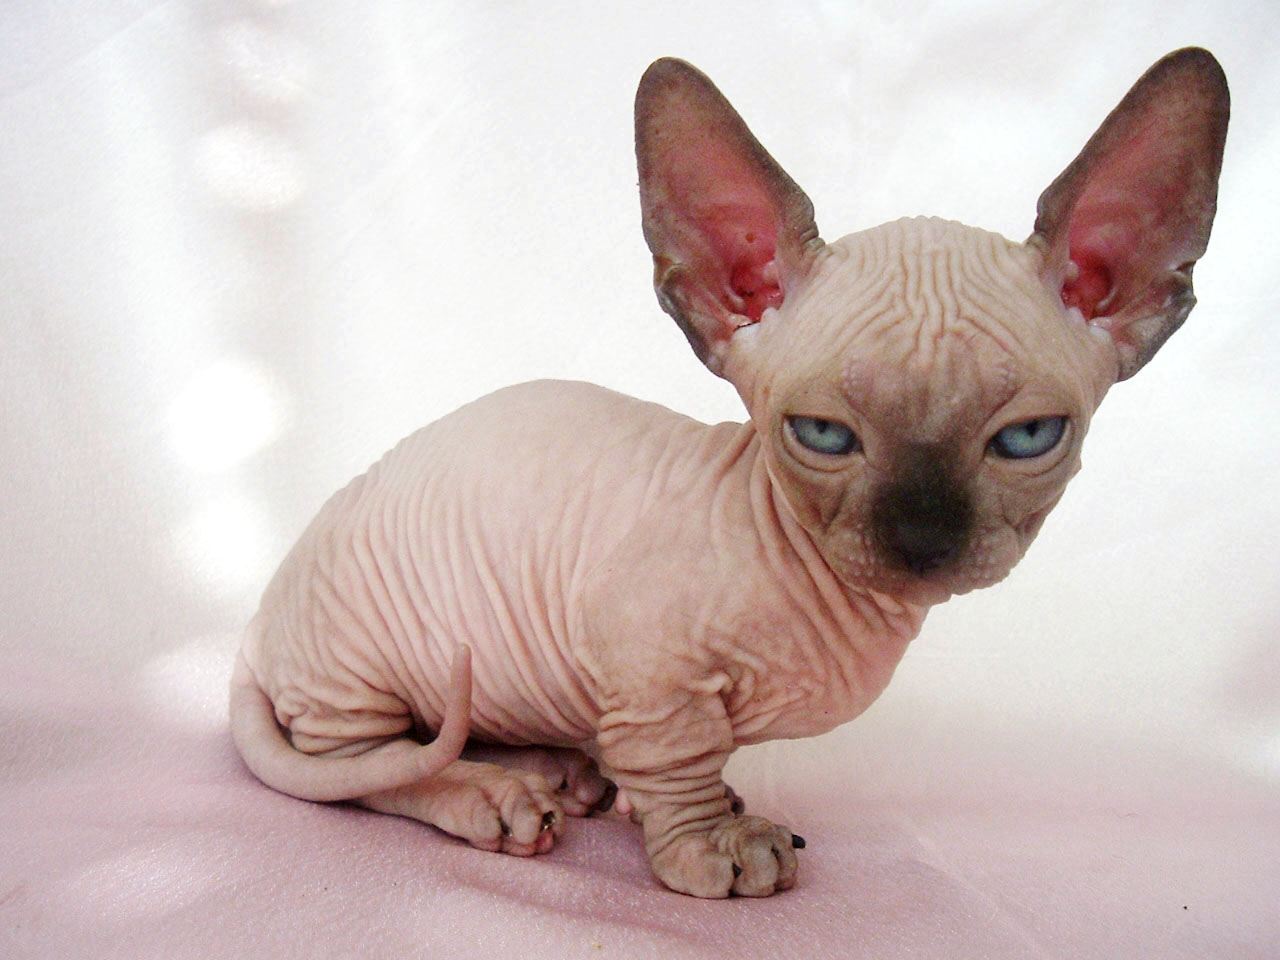 Sphynx Kitten Baby. Baby Sphynx Cat Photo, Pictures And Hd Wallpaper Wallpaper